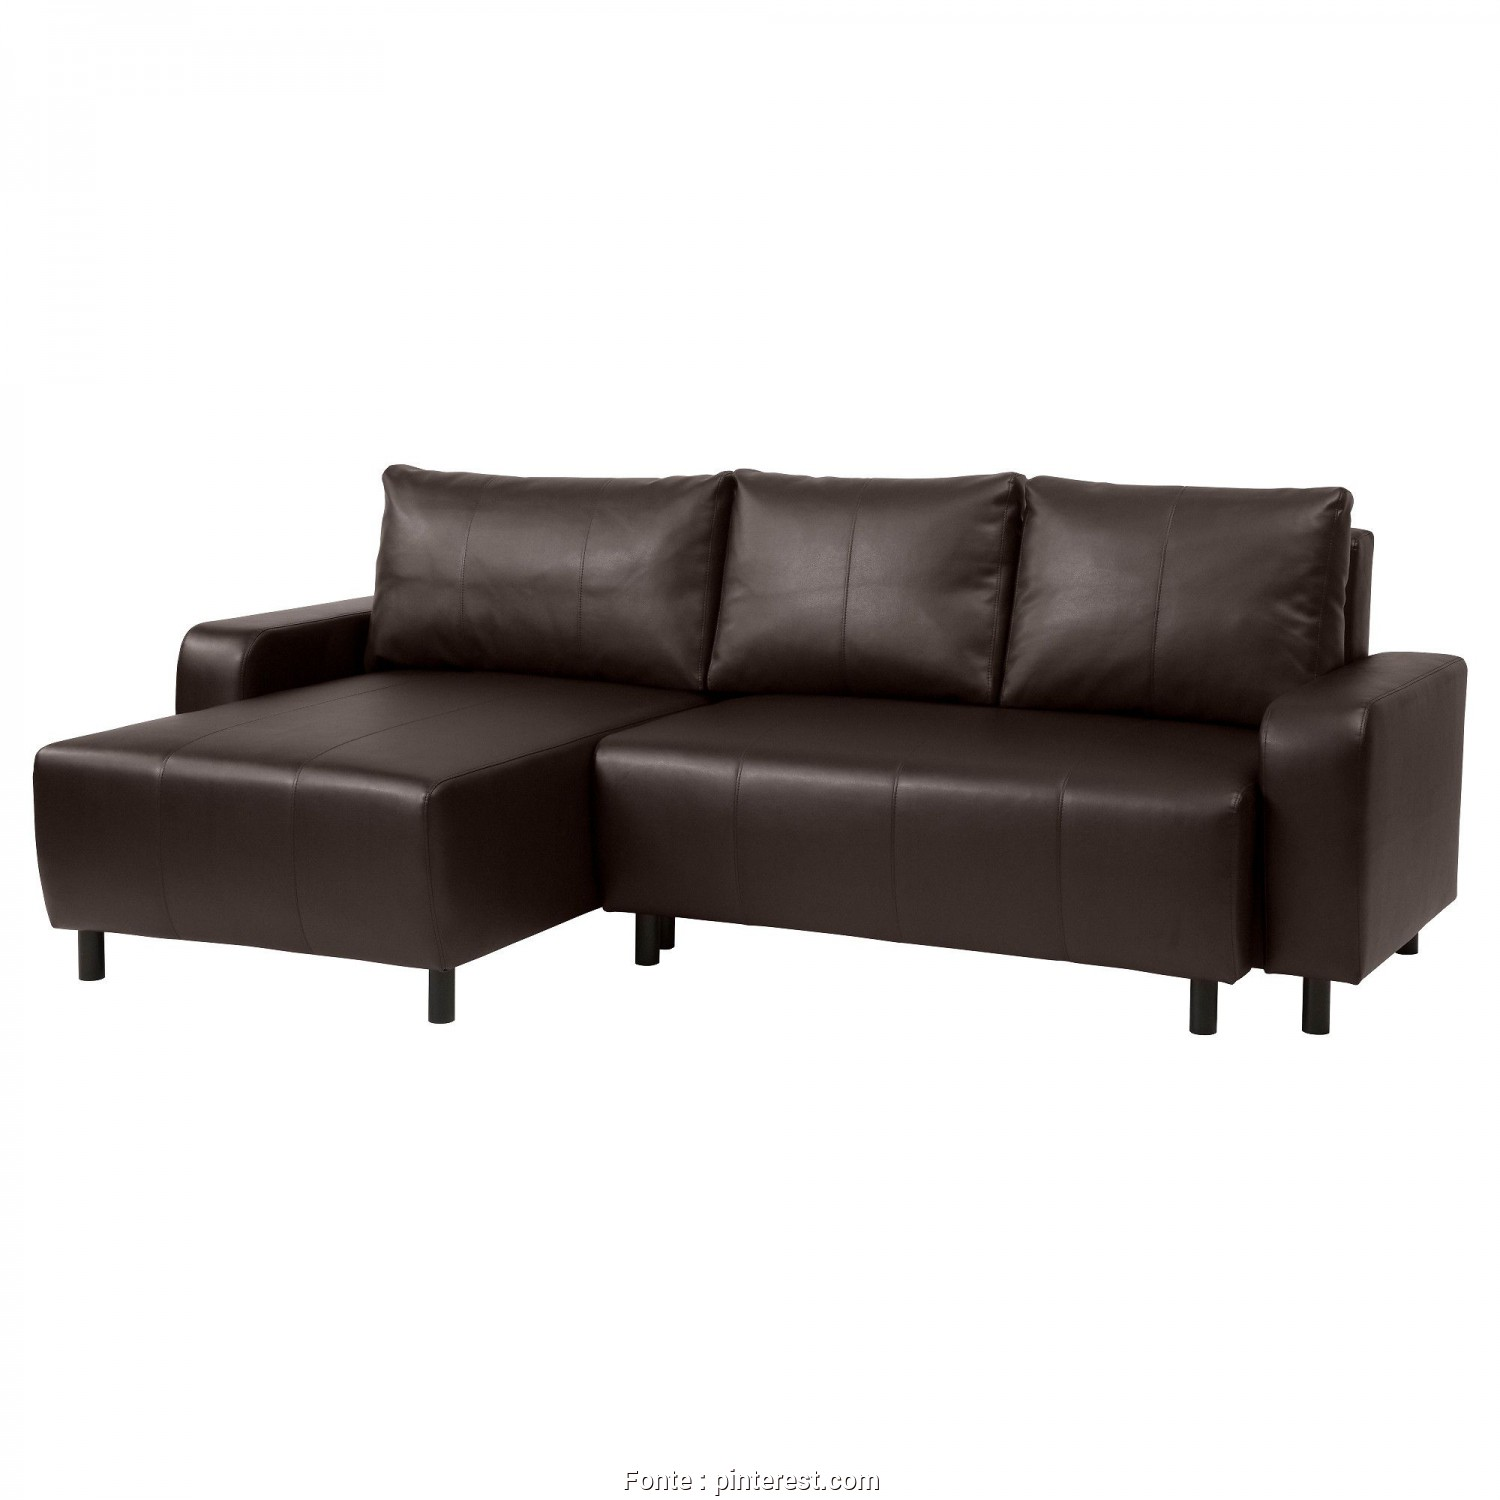 Amazon Copricuscini Divano Genius, Stupefacente IKEA, DJURSBO, Sleeper Sectional, 3-Seat, Kimstad Brown, ,, Can Place, Chaise Section To, Left Or Right Of, Sofa,, Switch Whenever, Like